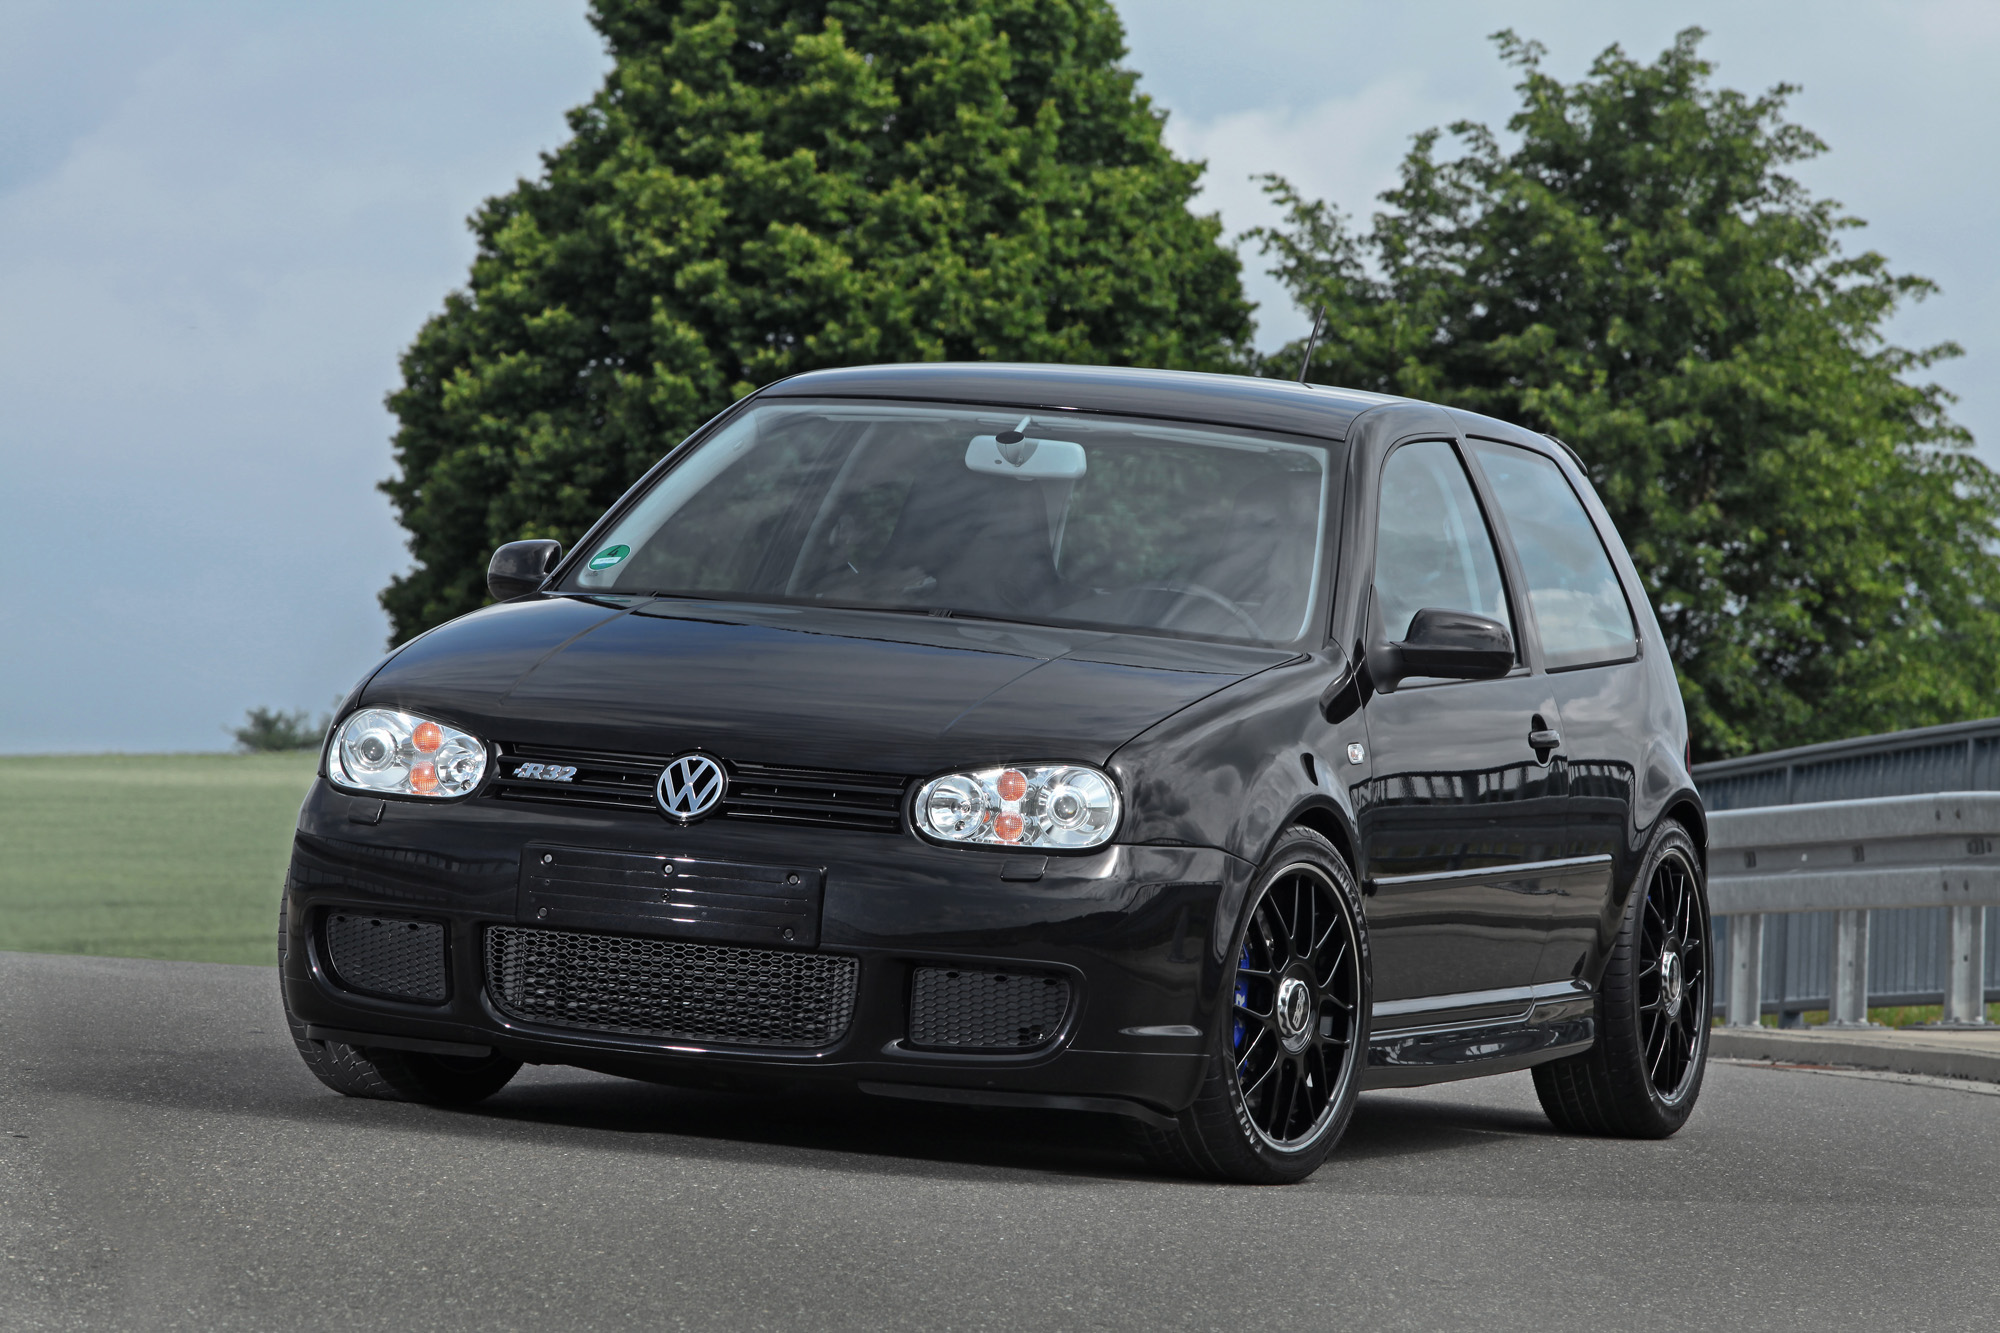 vw golf 4 r32 hperformance trimmt den vr6 auf satte 650 ps tuning. Black Bedroom Furniture Sets. Home Design Ideas